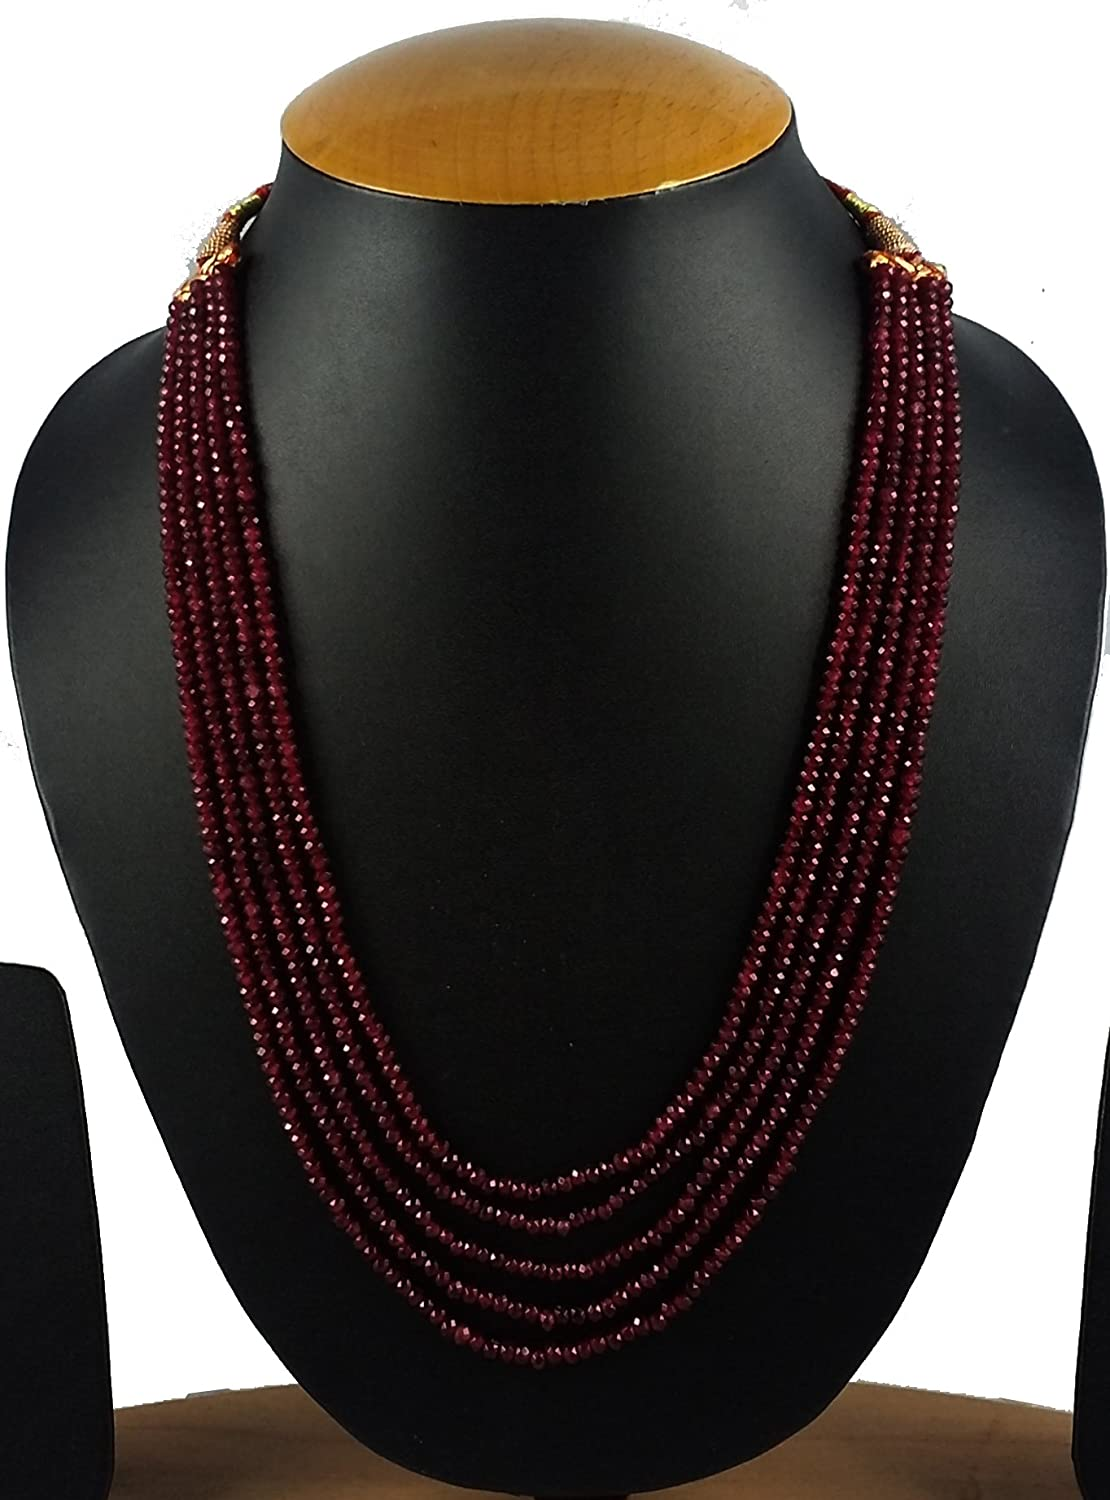 pearl necklace diamond india products for with lady maroon alloy opera green trendy moti colored necklaces women